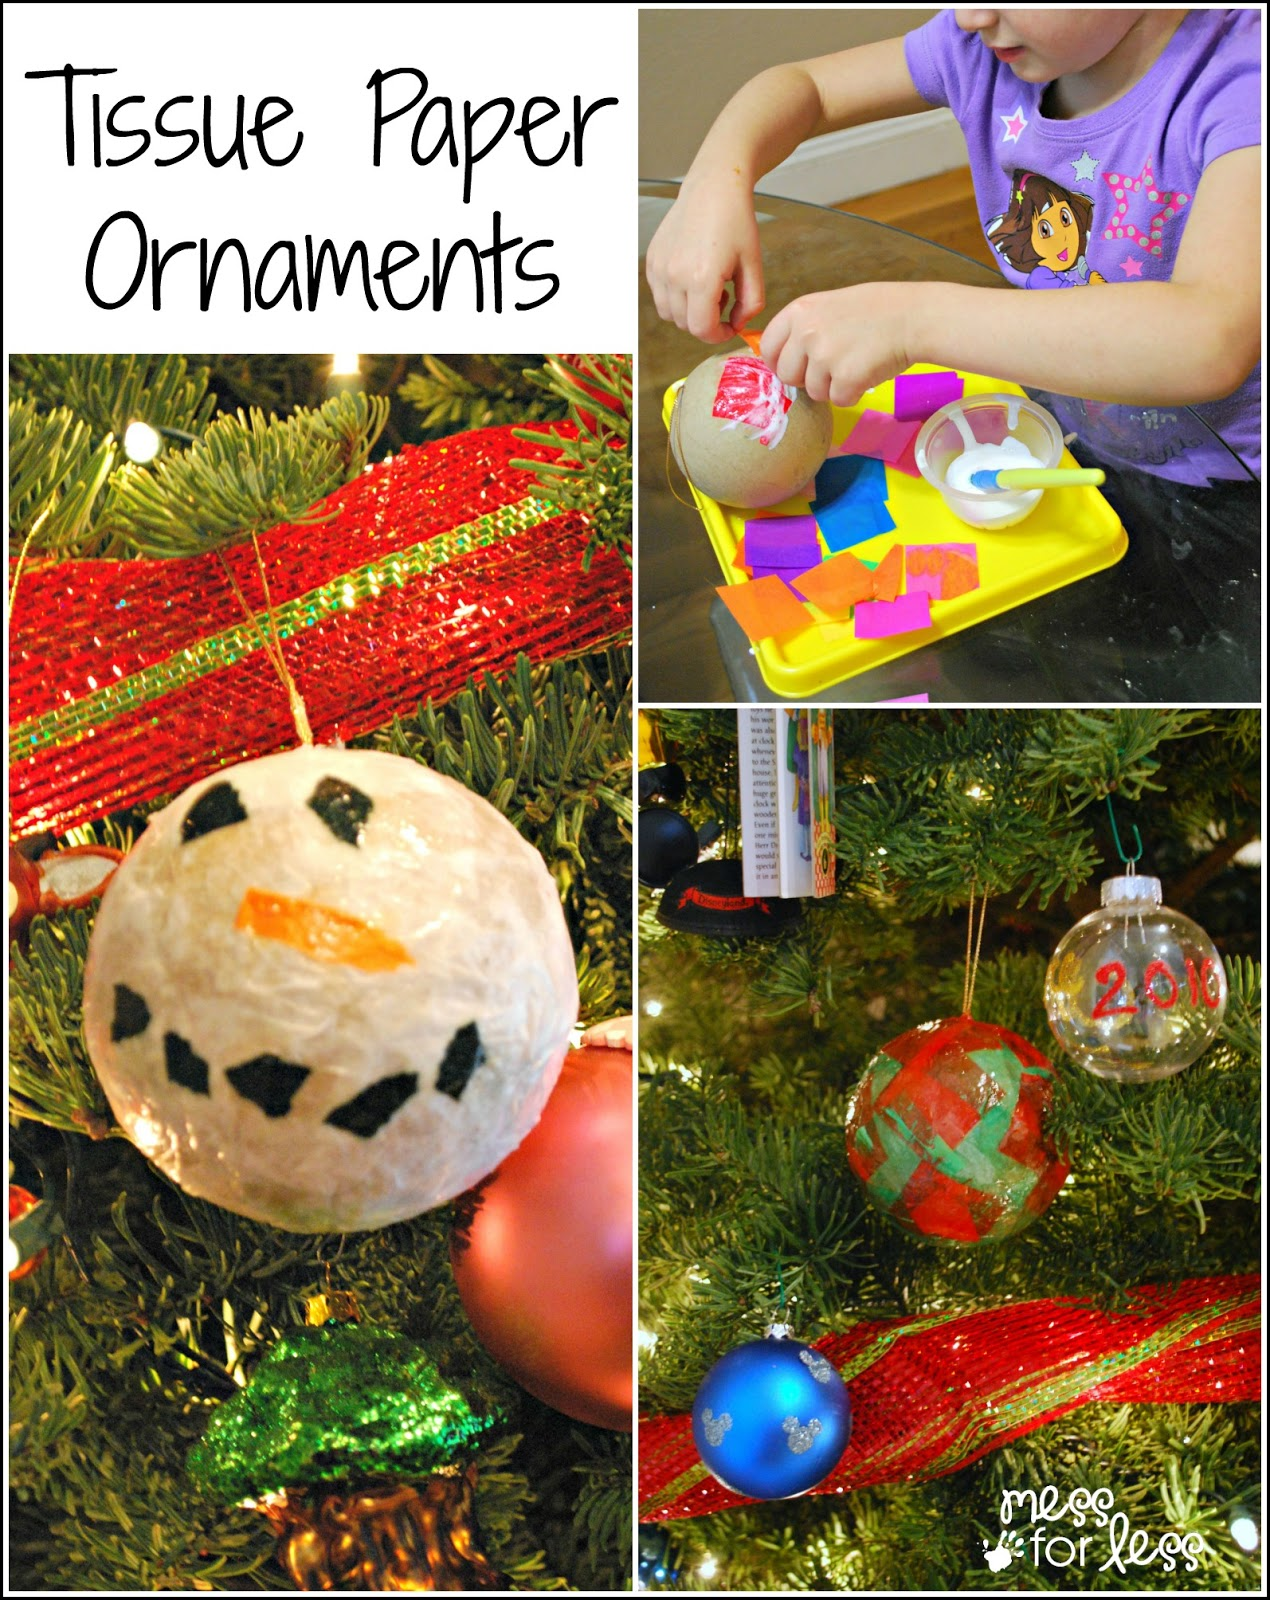 Tissue Paper Ornaments - these handmade Christmas ornaments are fun to make with kids. So many variations are possible!